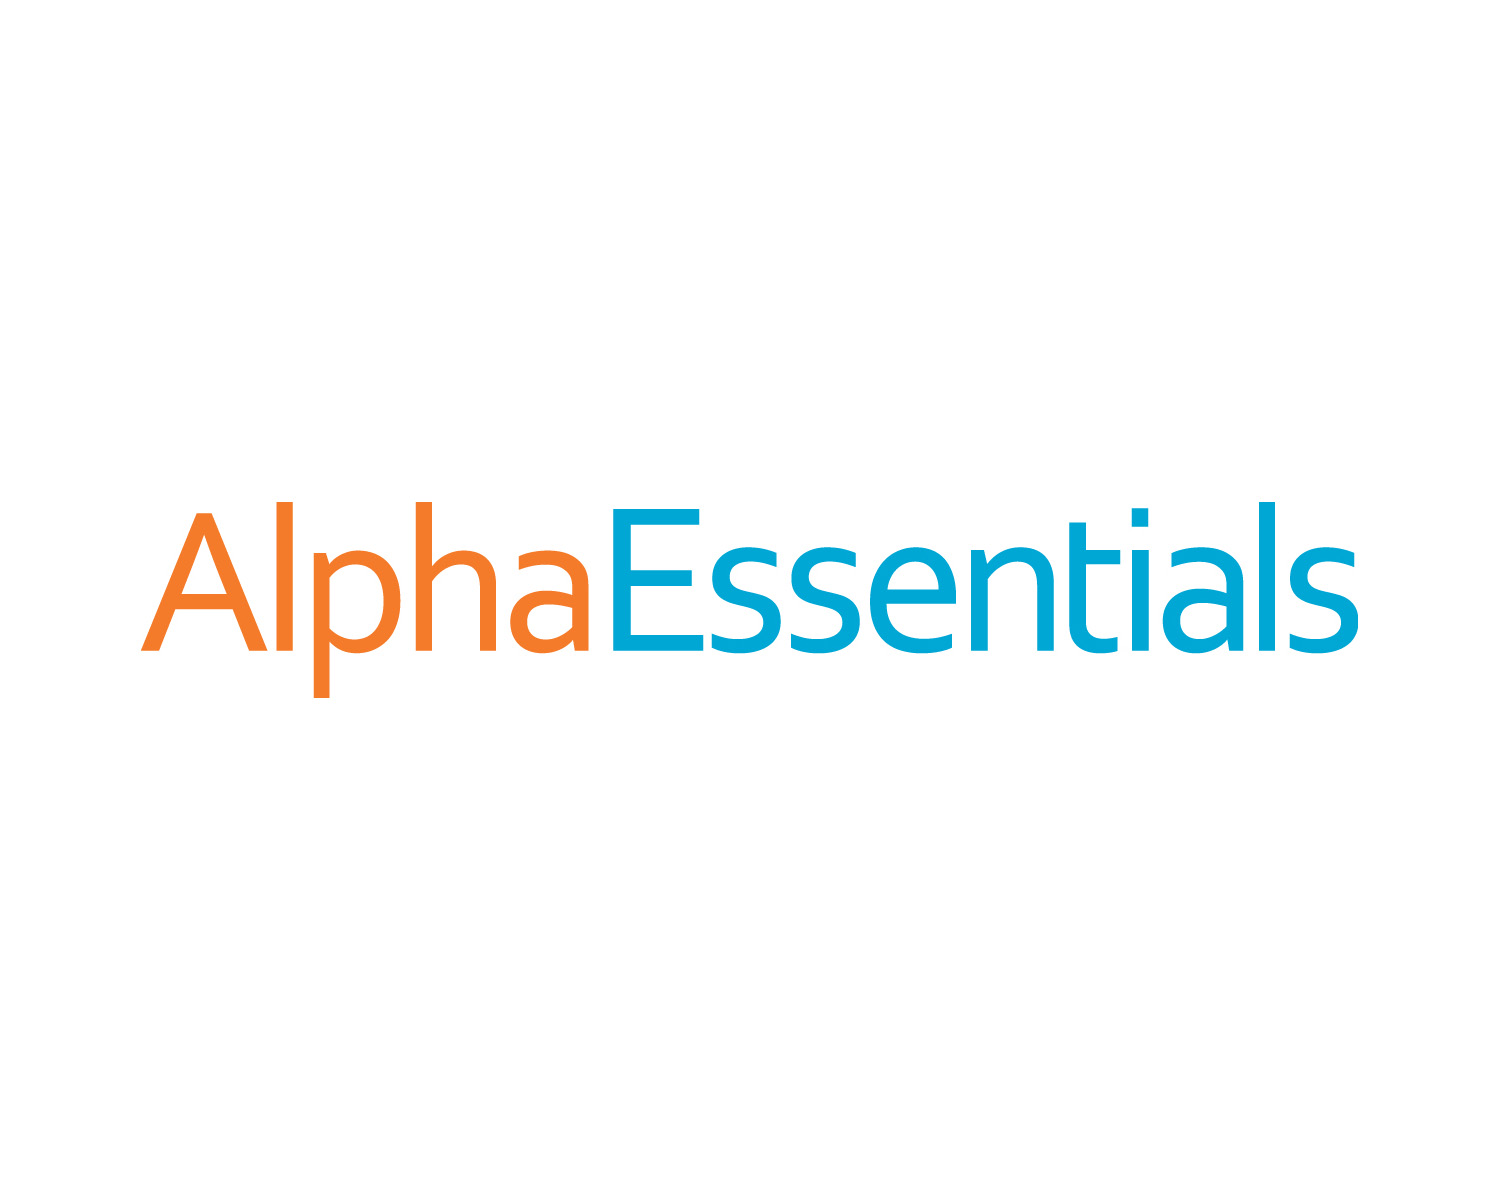 alpha essentials hrz